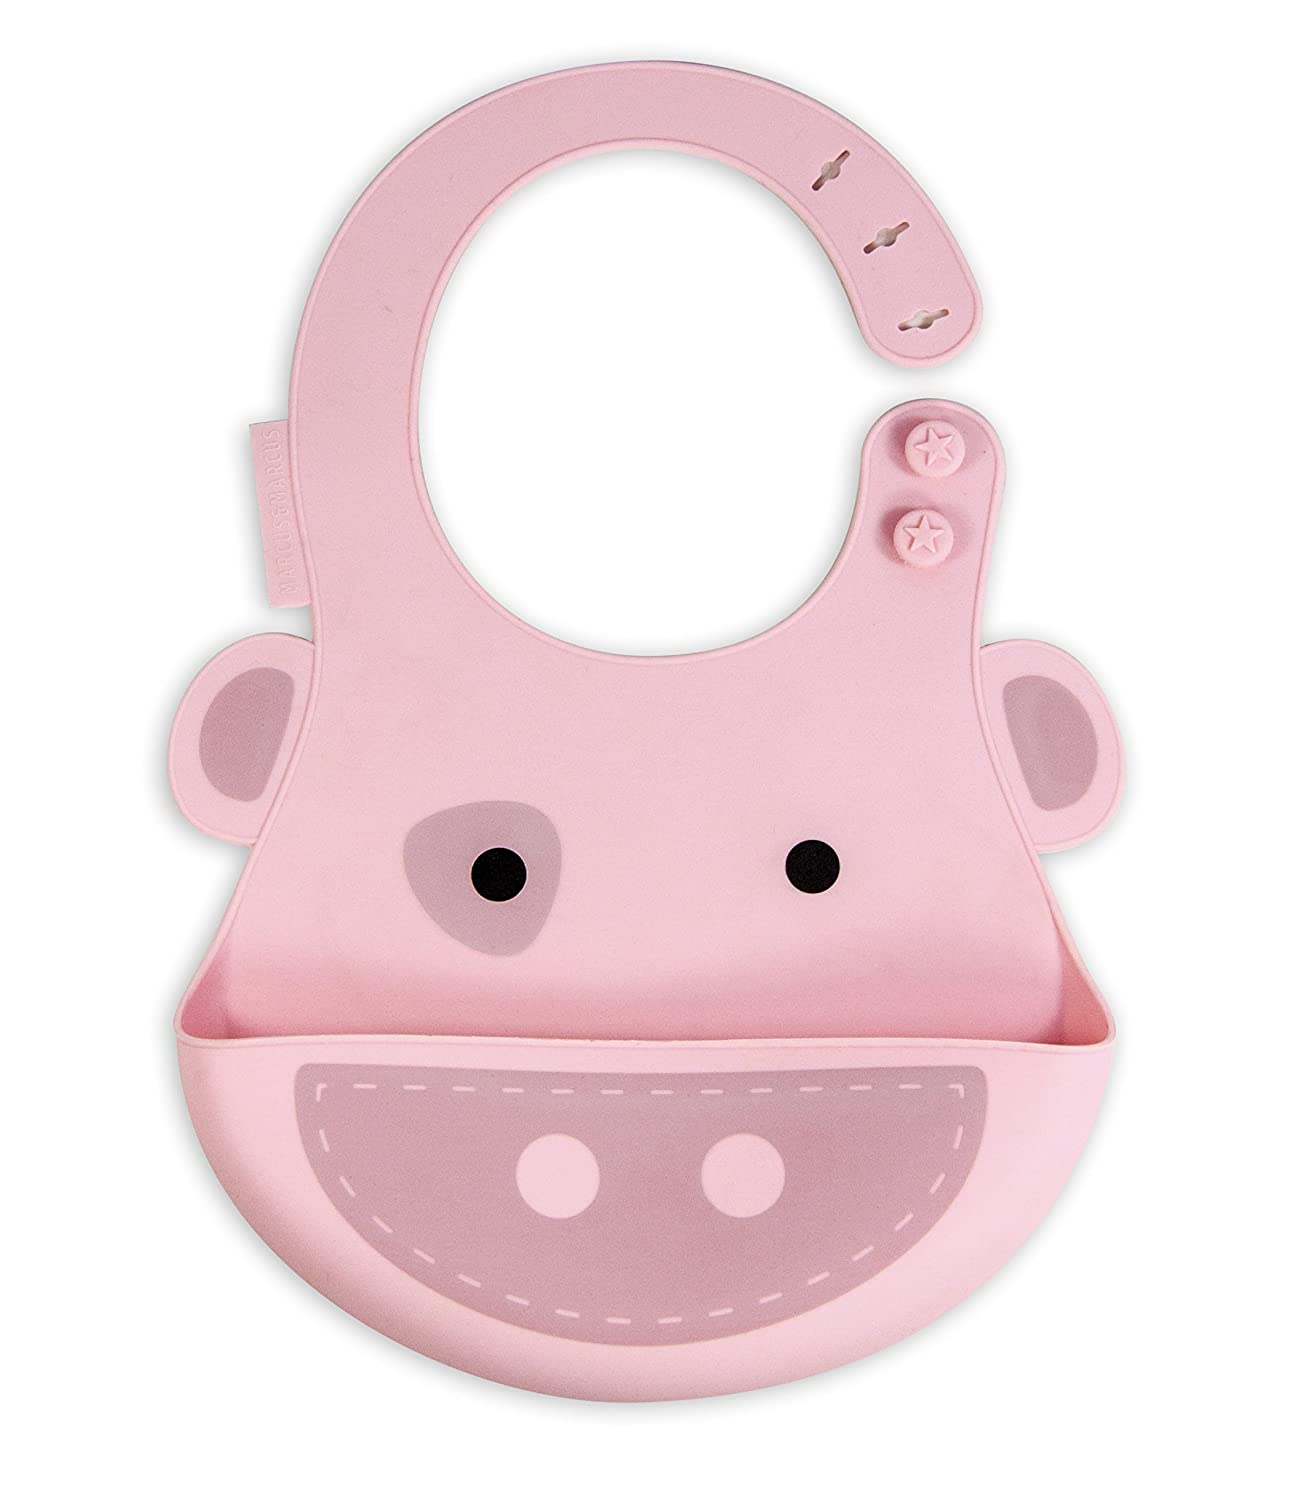 Marcus & Marcus POKEY THE PIG Adjustable Silicone Baby Bib - Pink 11001